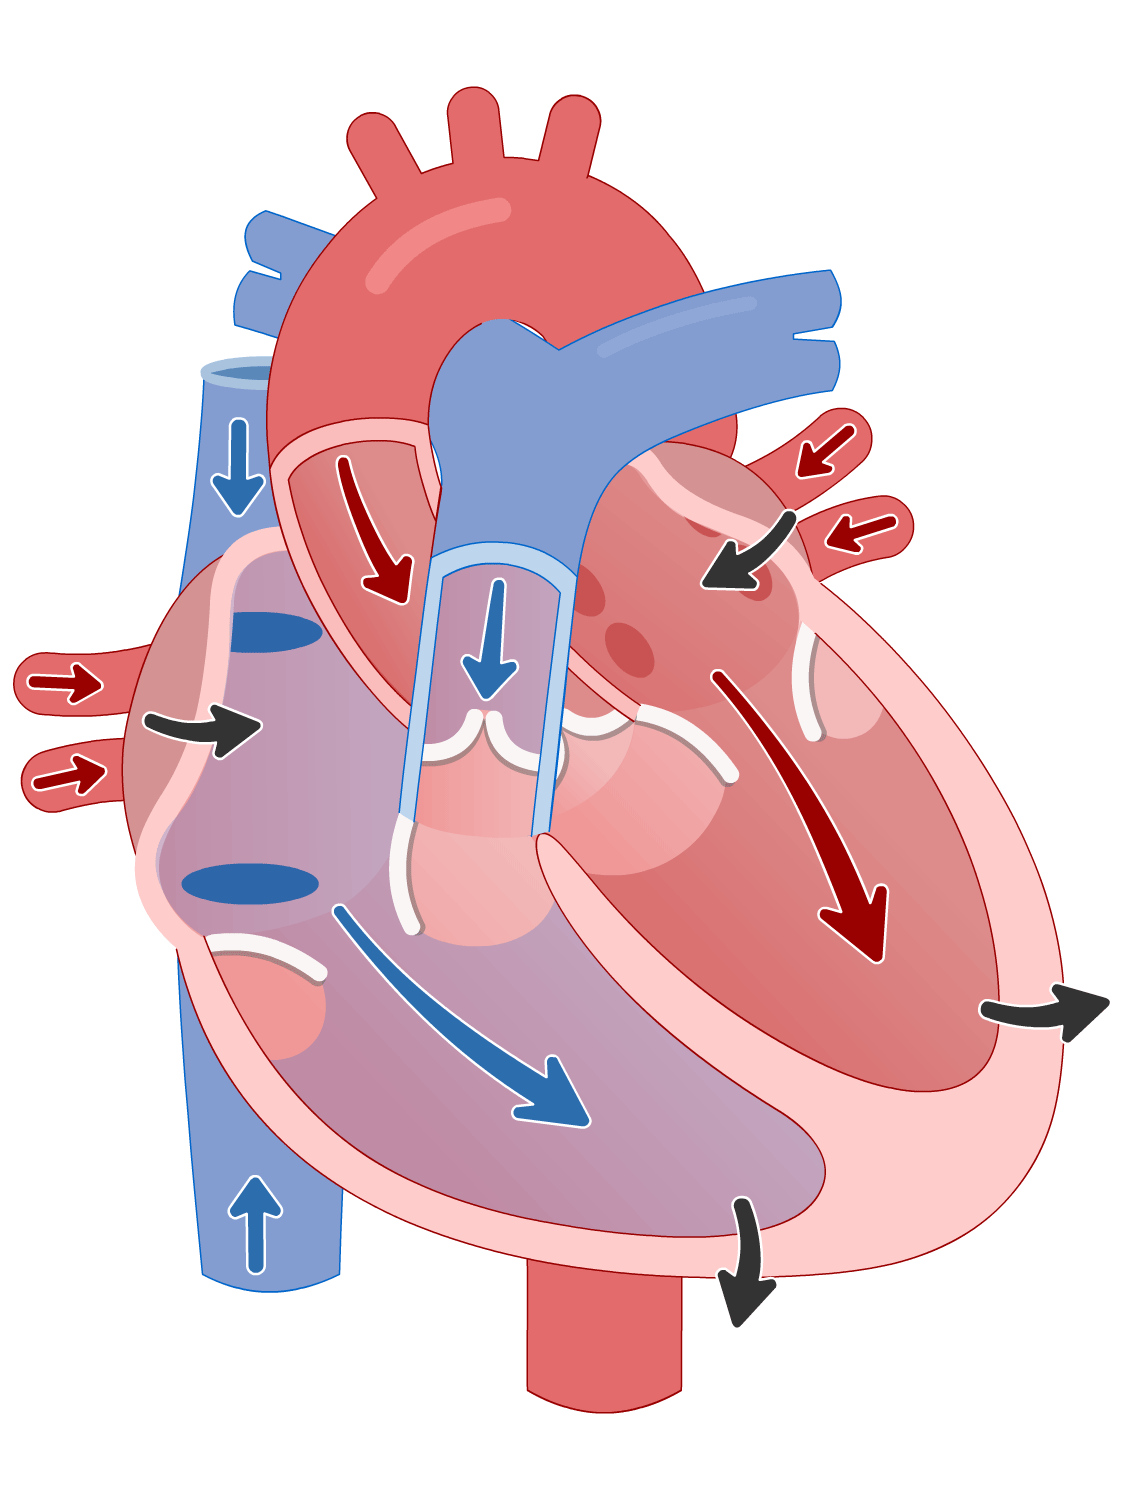 Cardiac cycle of the heart - atrial systole phase